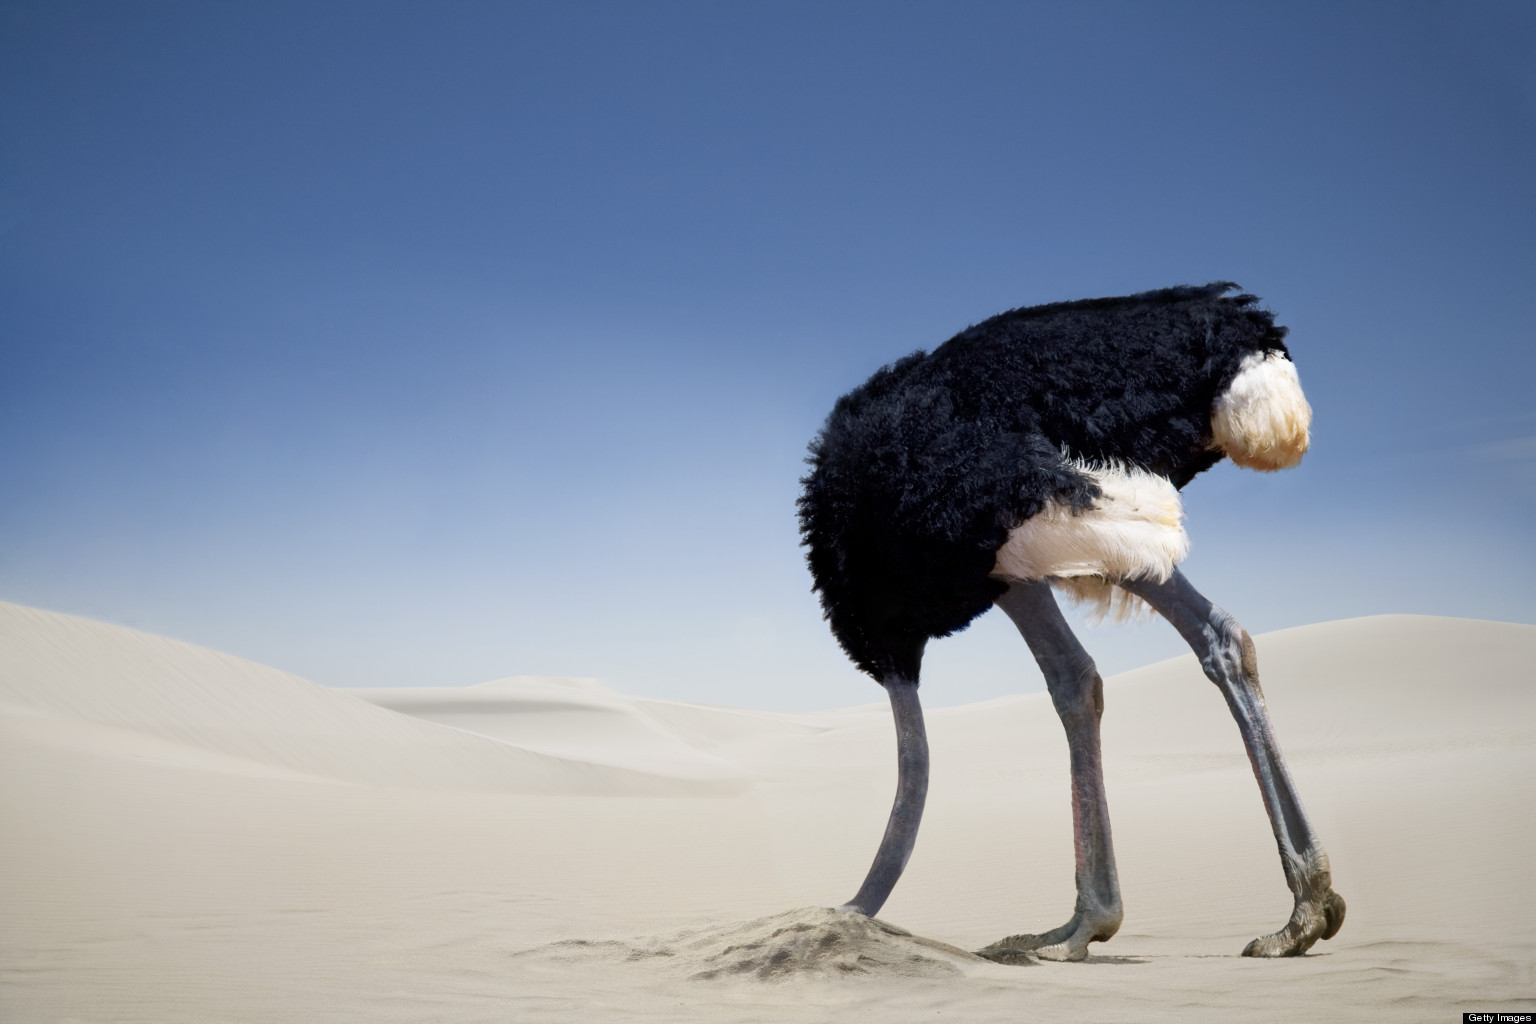 ostrich avoiding fear with head in the sand